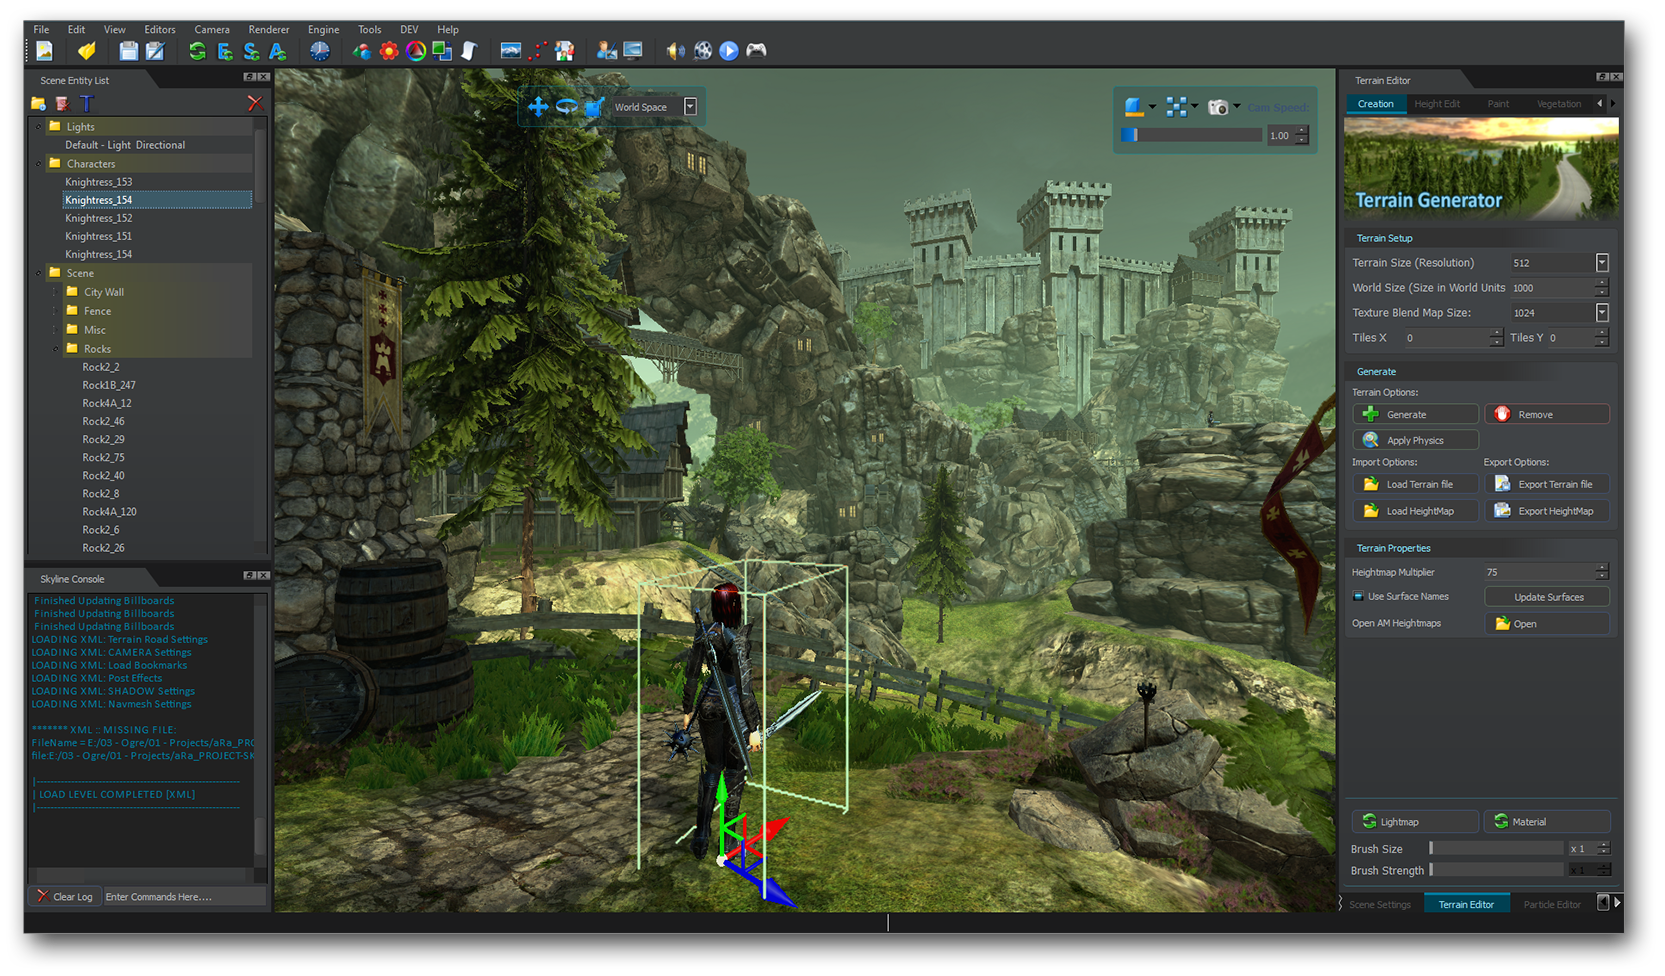 Game engine ogre open source 3d graphics engine 3d editor